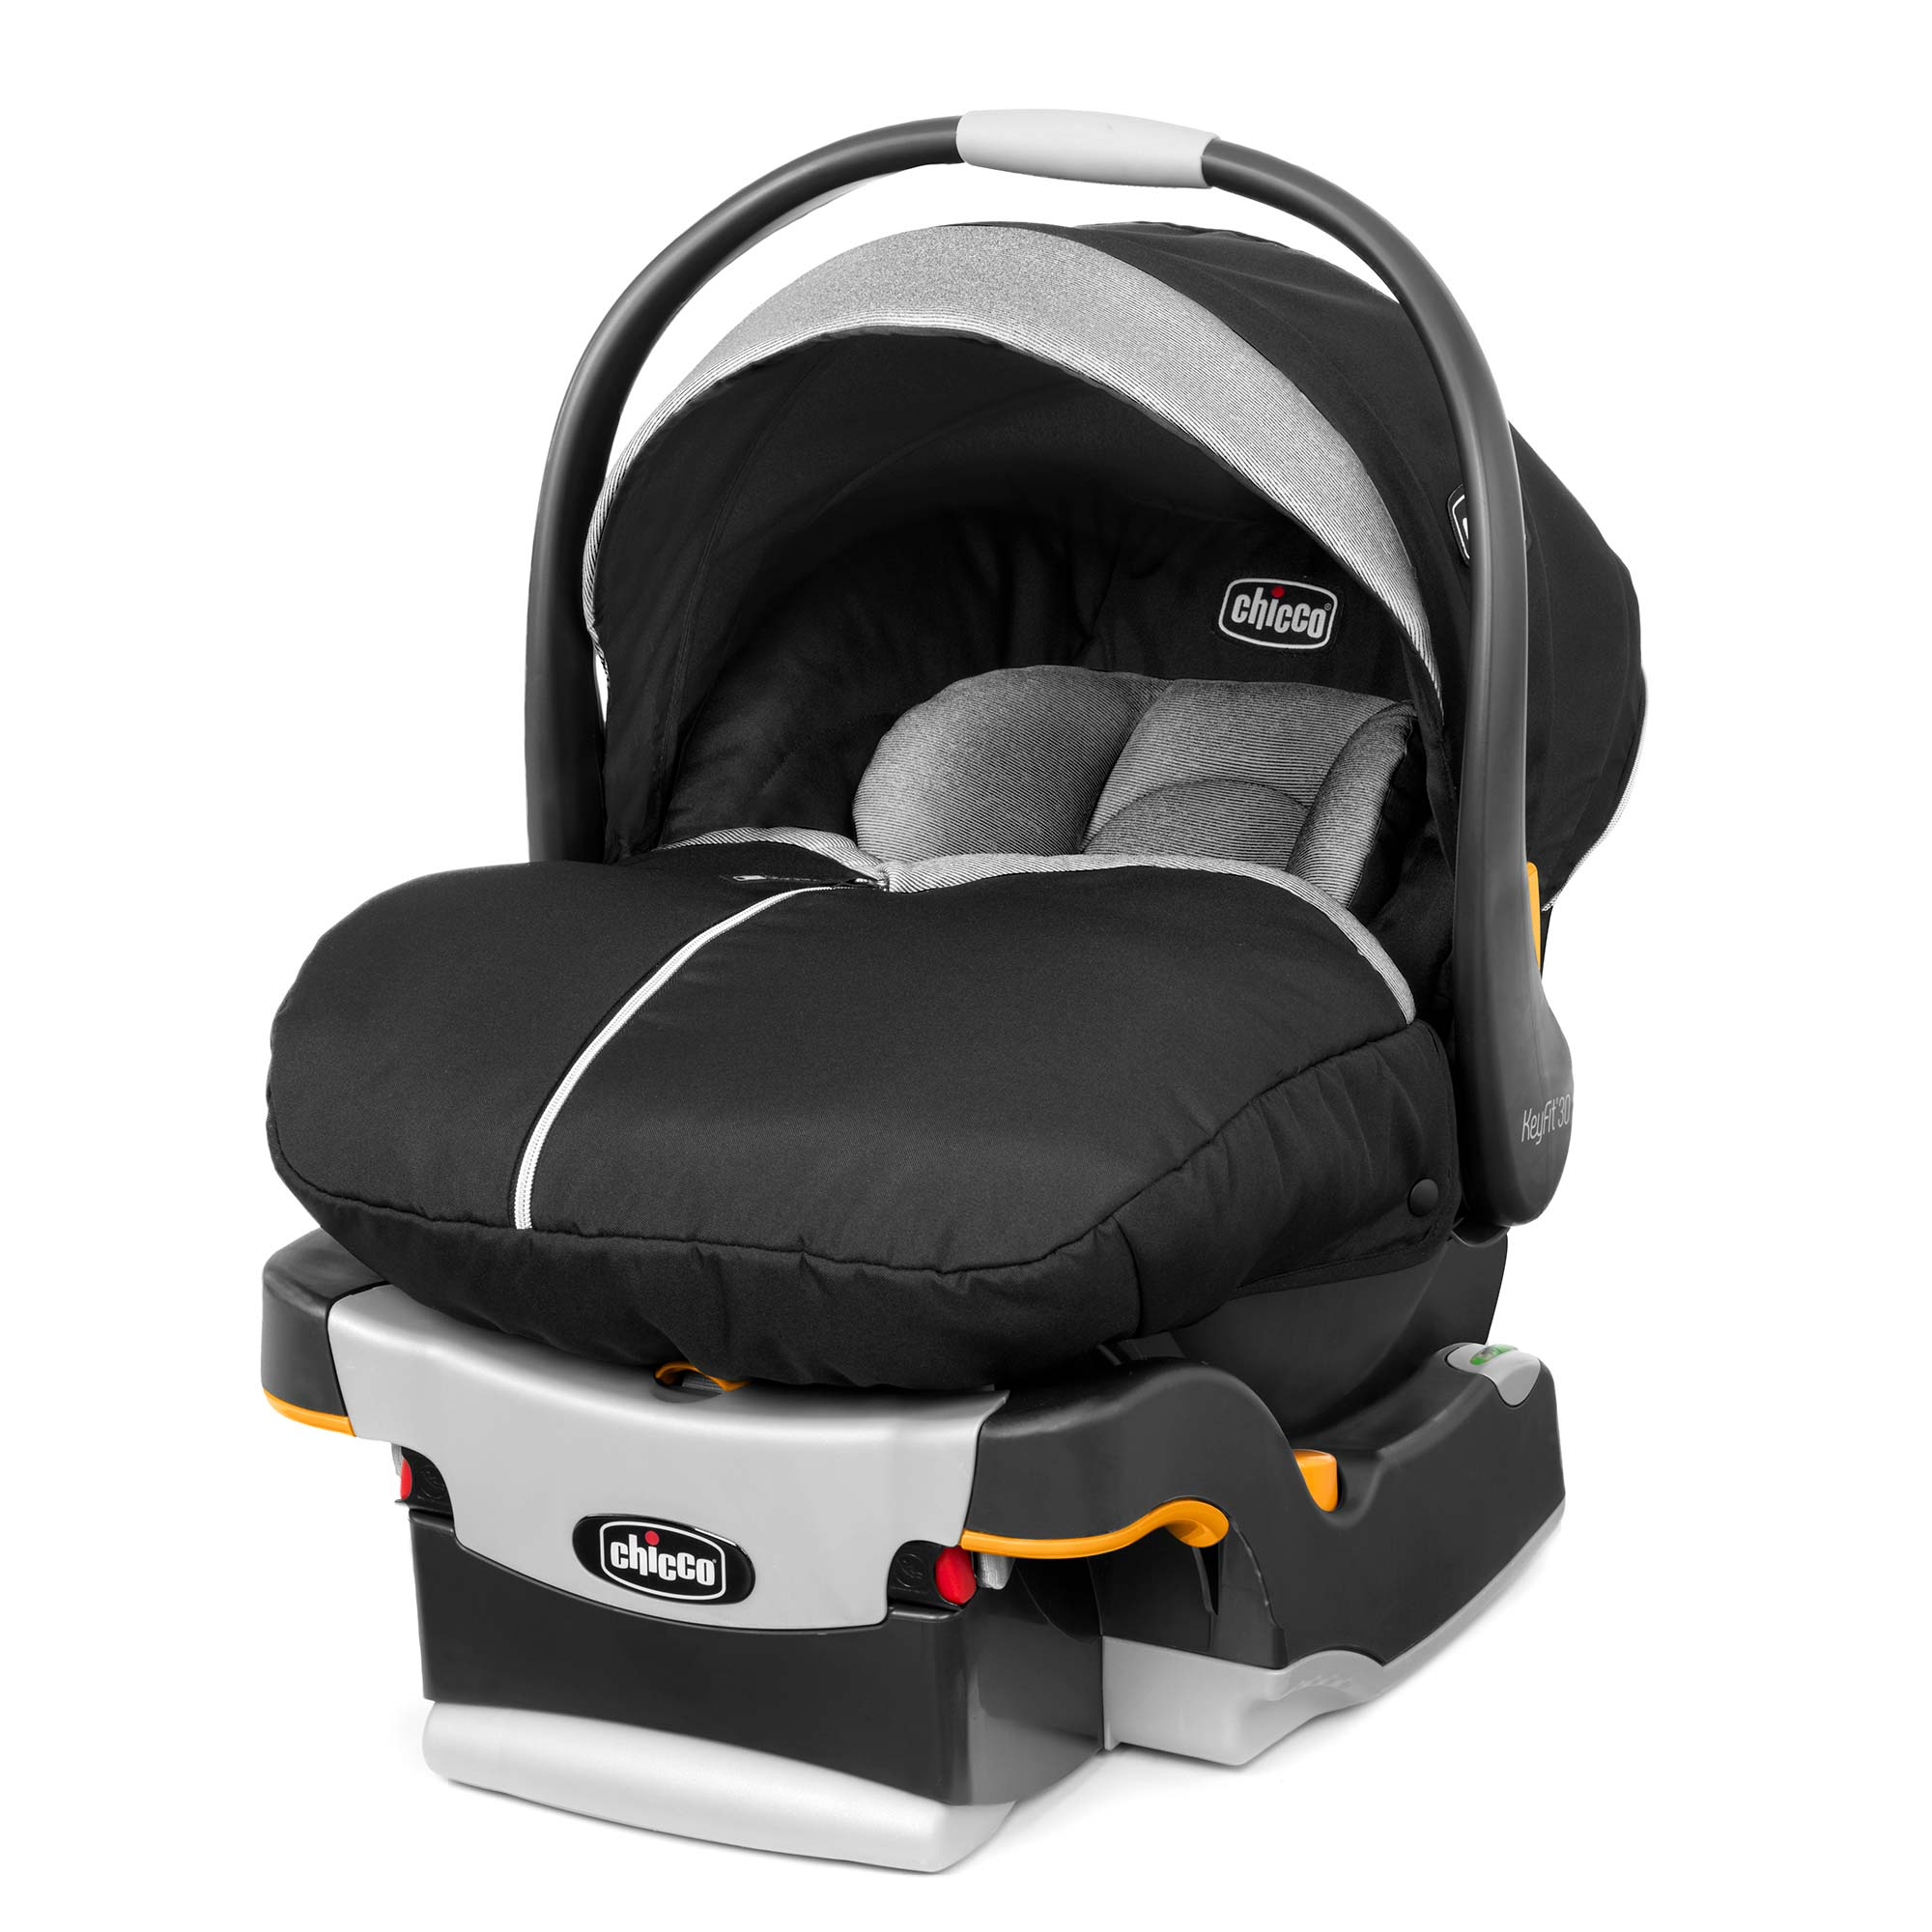 KeyFit 30 Zip Infant Car Seat in Black | Chicco